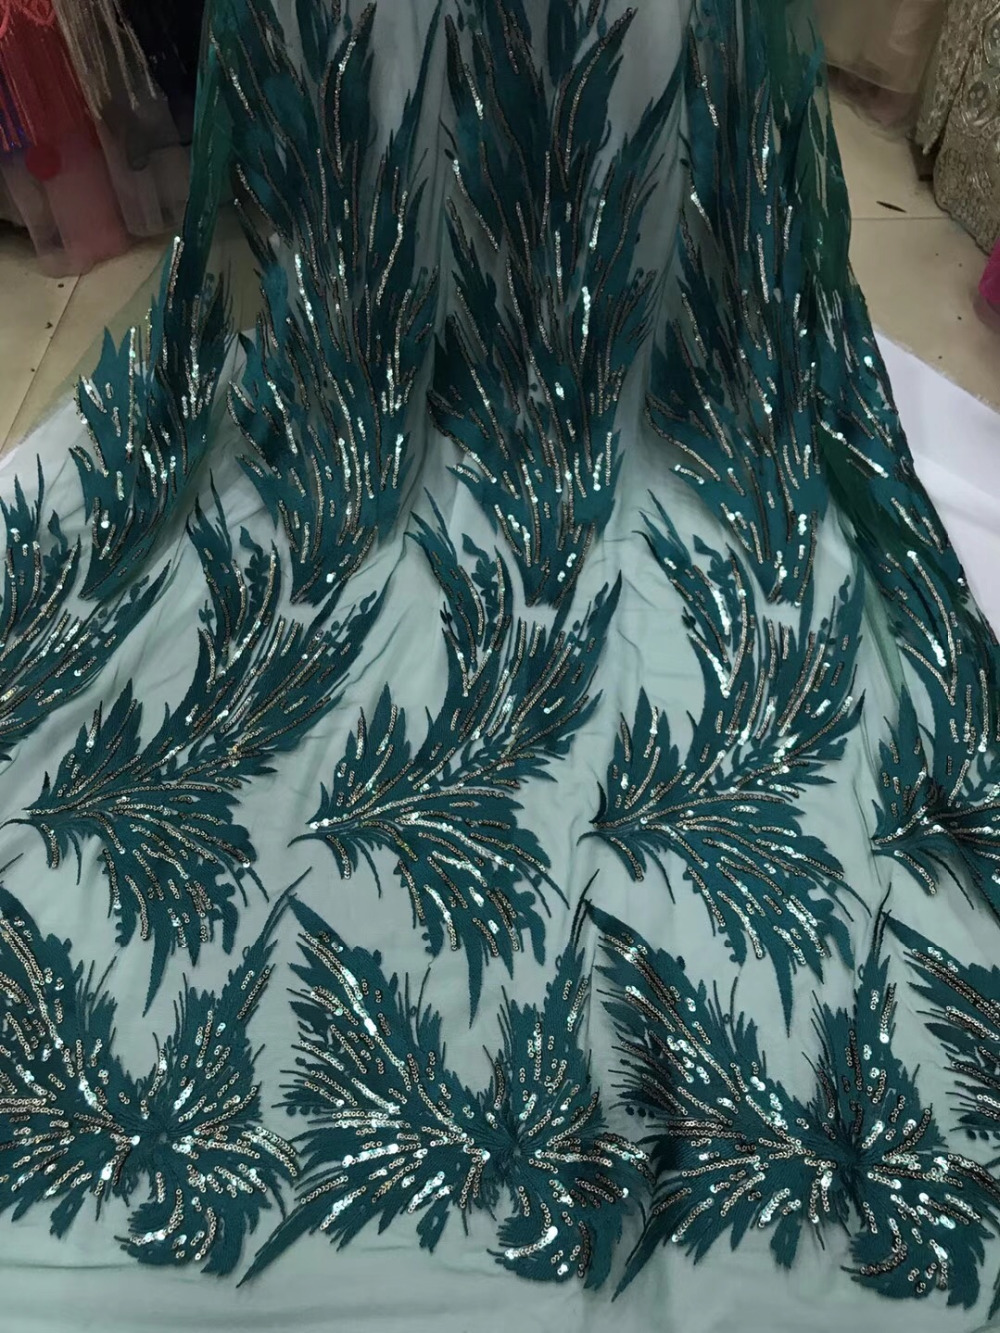 Popular Nigerian 2018 High Quality African Fabric Lace French Lace Sequined Embroidery Green Color Lowest Price